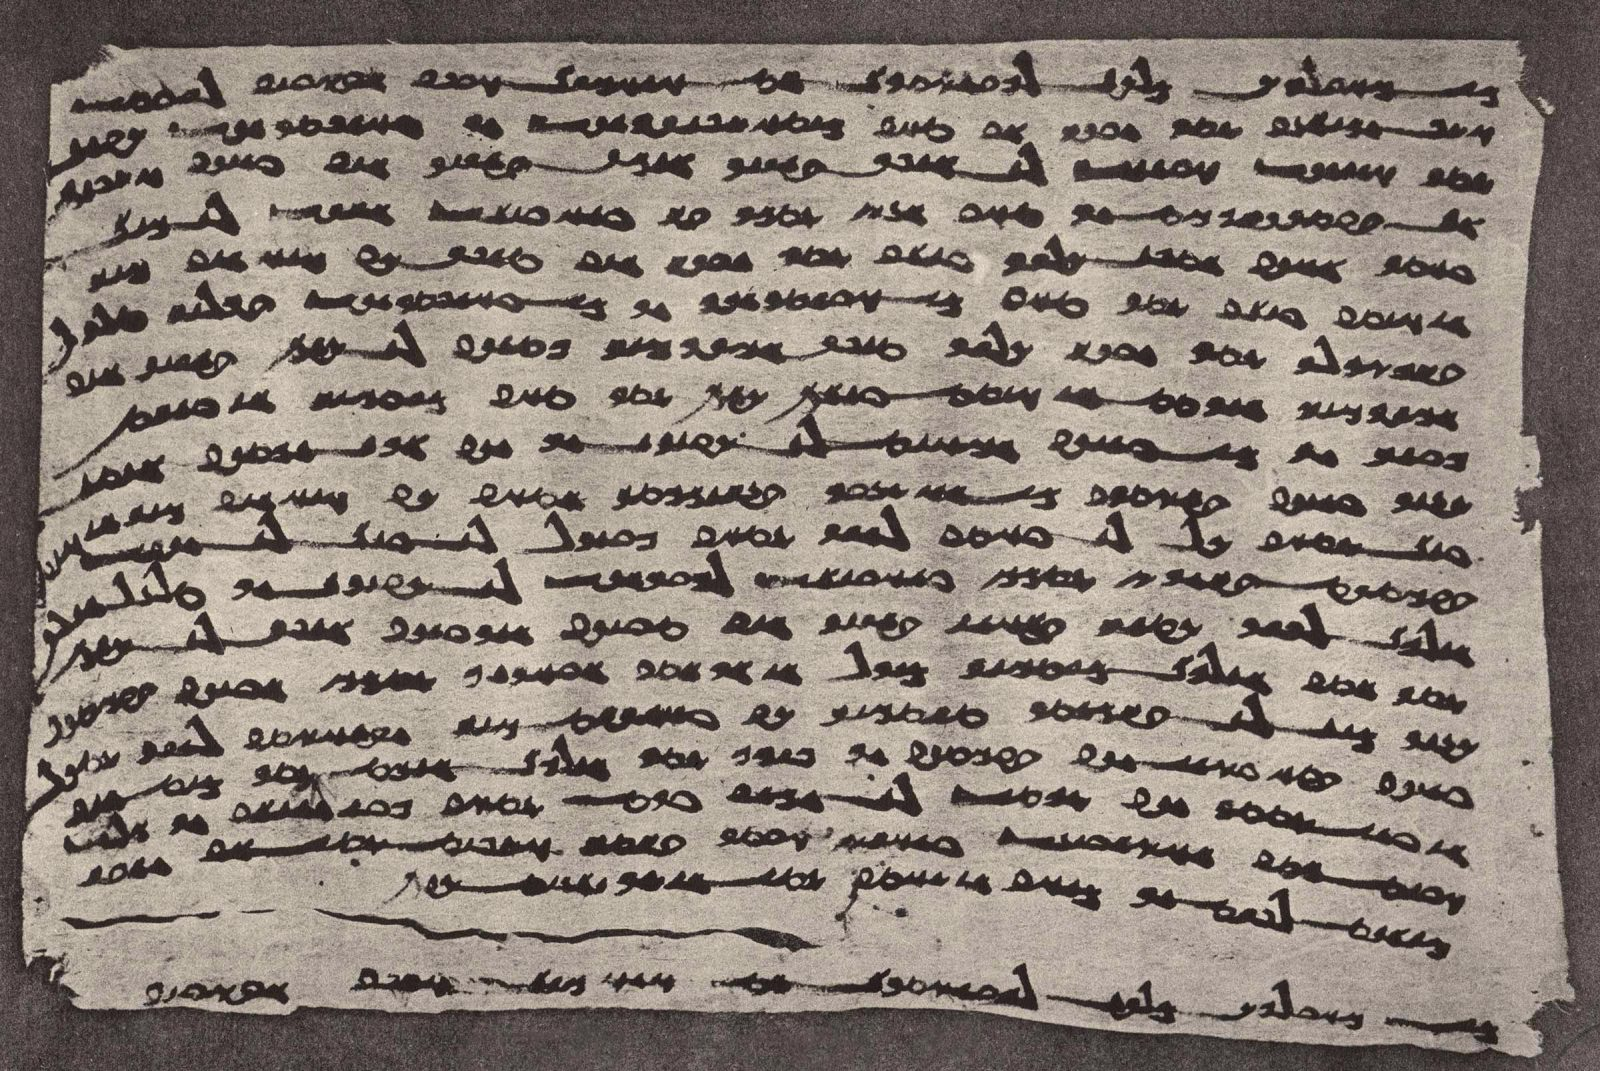 This letters was sent from the ruler of Panjikent to the ruler of Khakhsar.